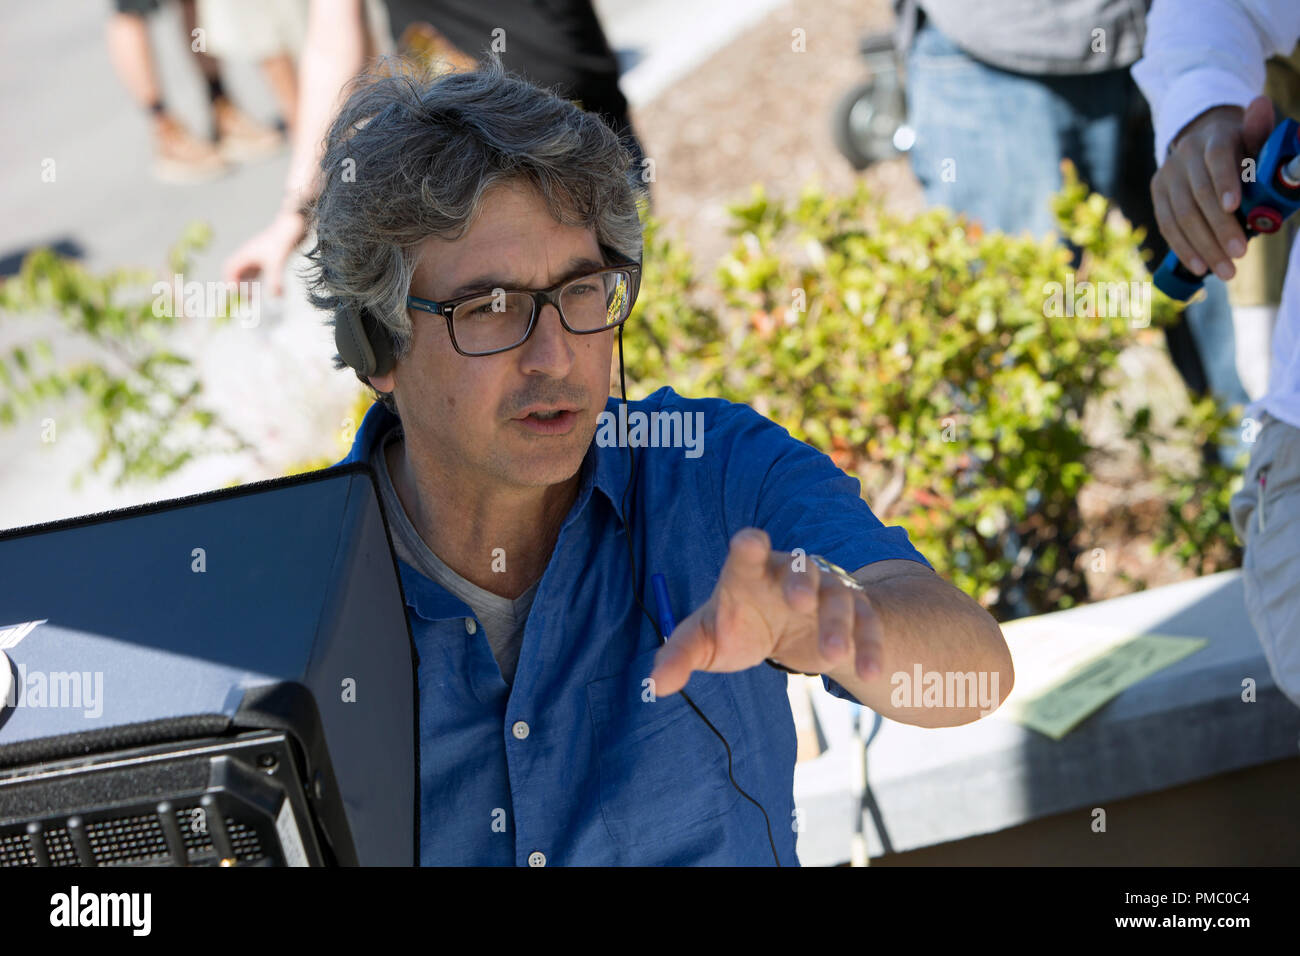 Alexander Payne on the set of Downsizing from Paramount Pictures. (2017) - Stock Image